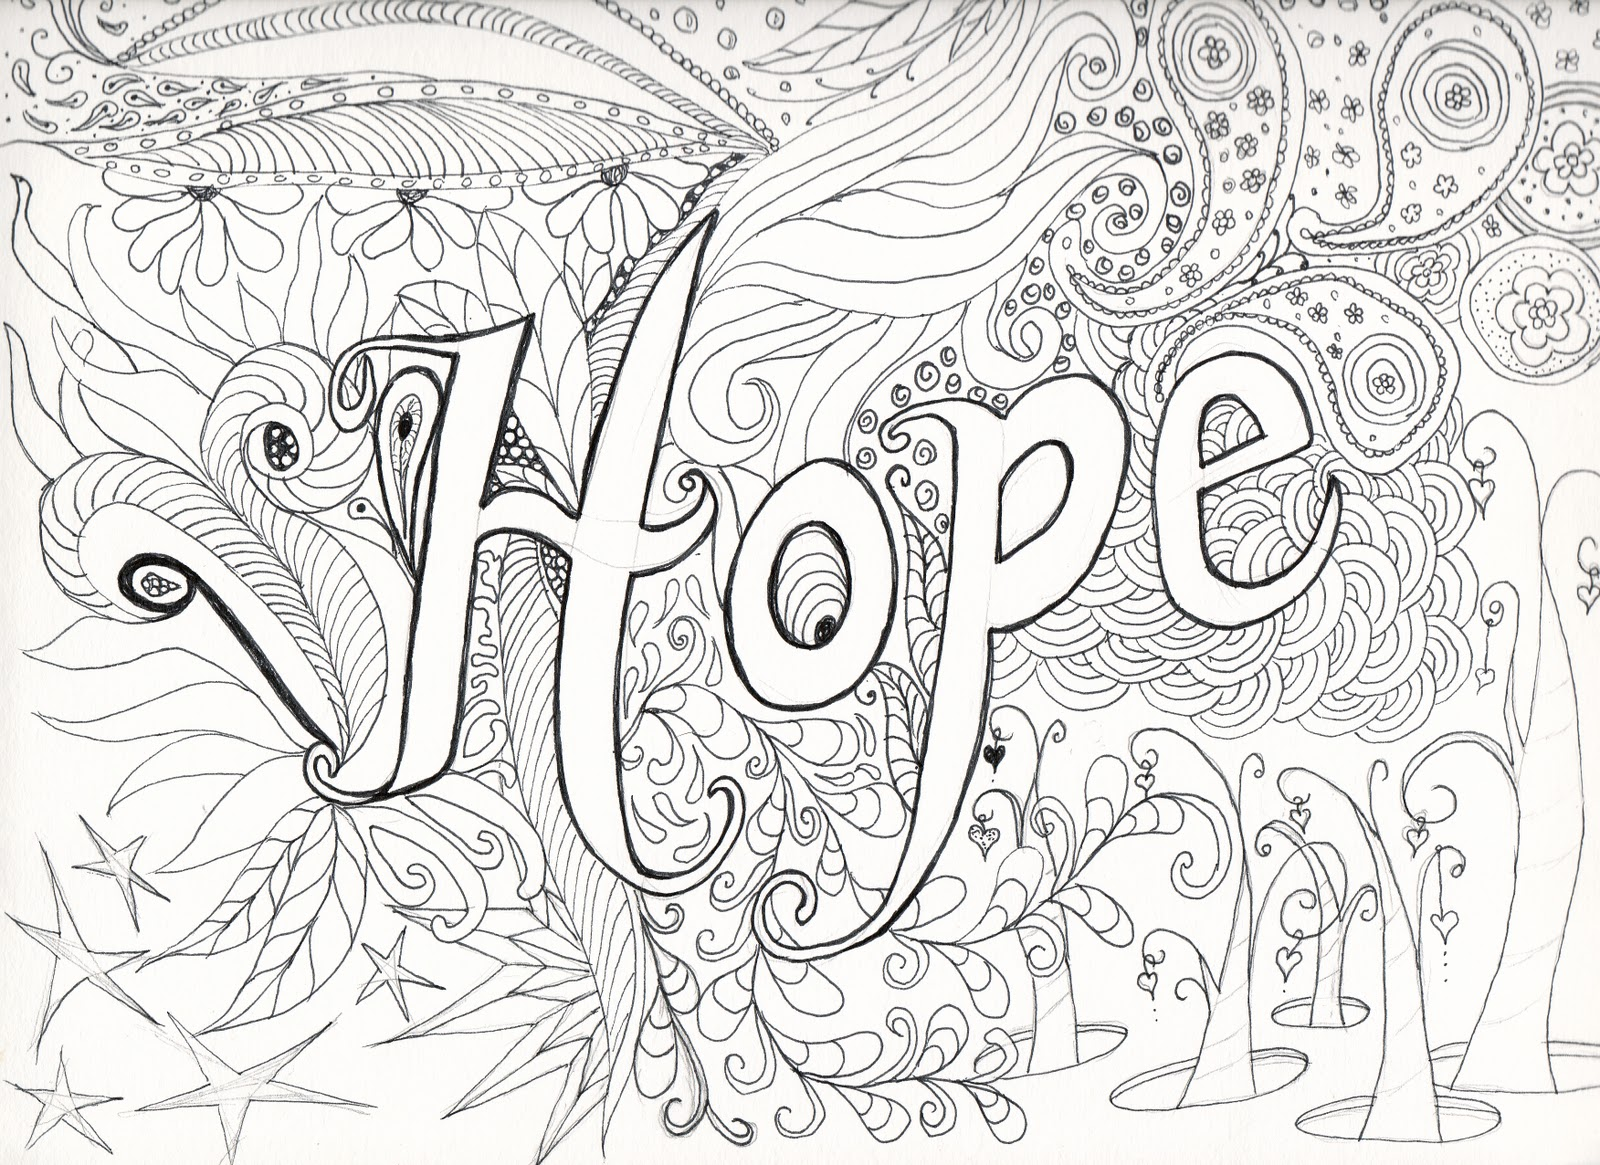 complex coloring pages - Difficult Coloring Pages